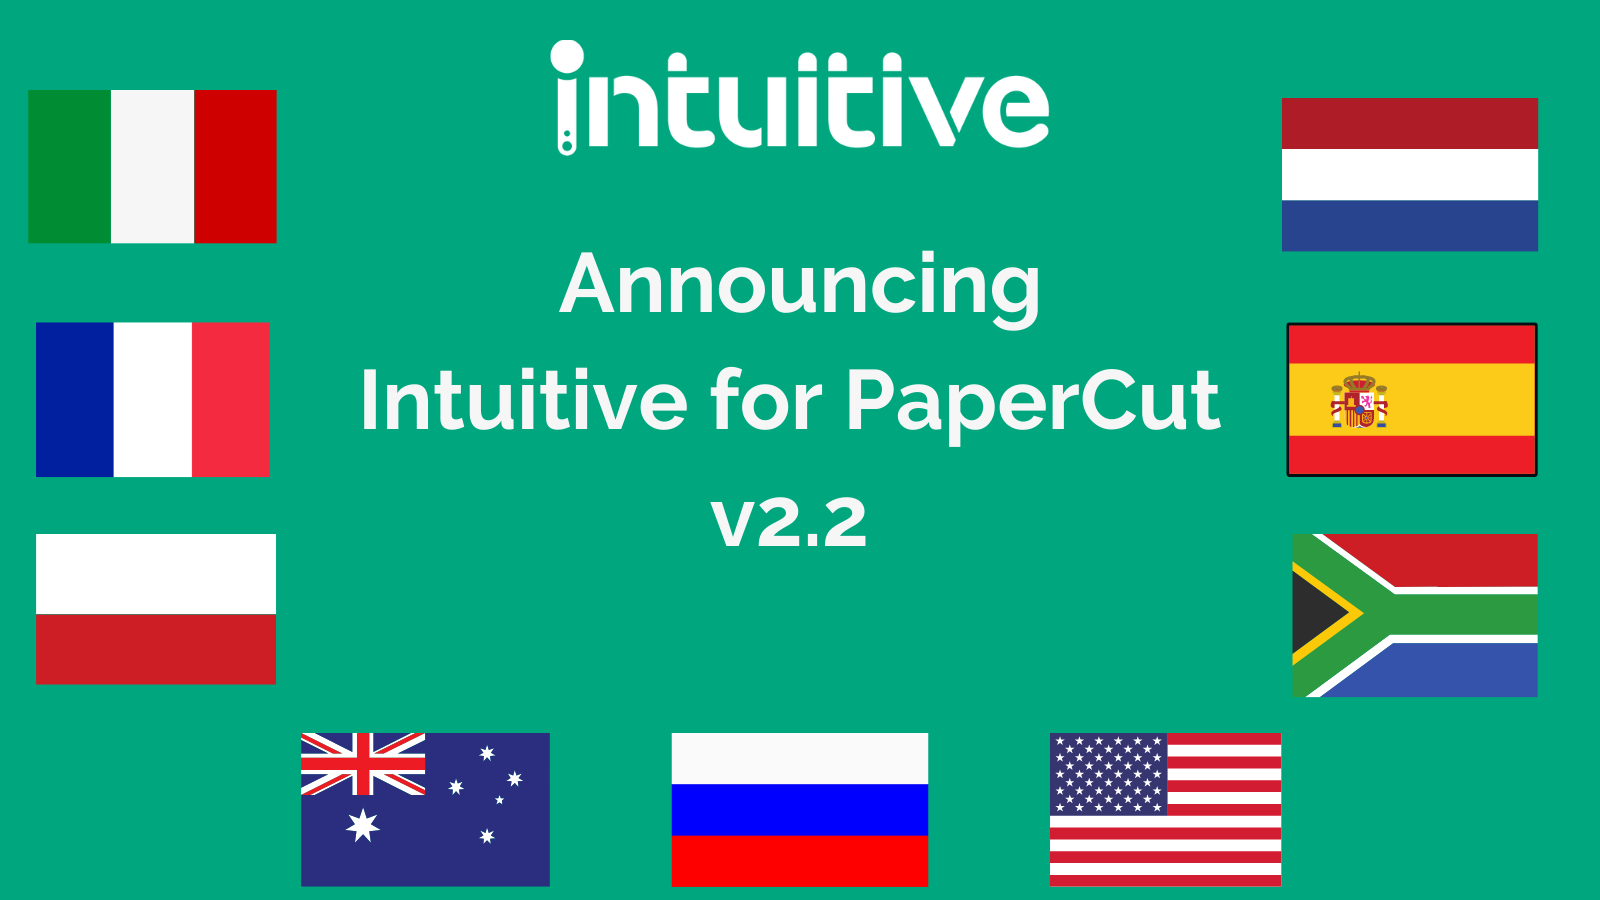 Intuitive for PaperCut v2.2